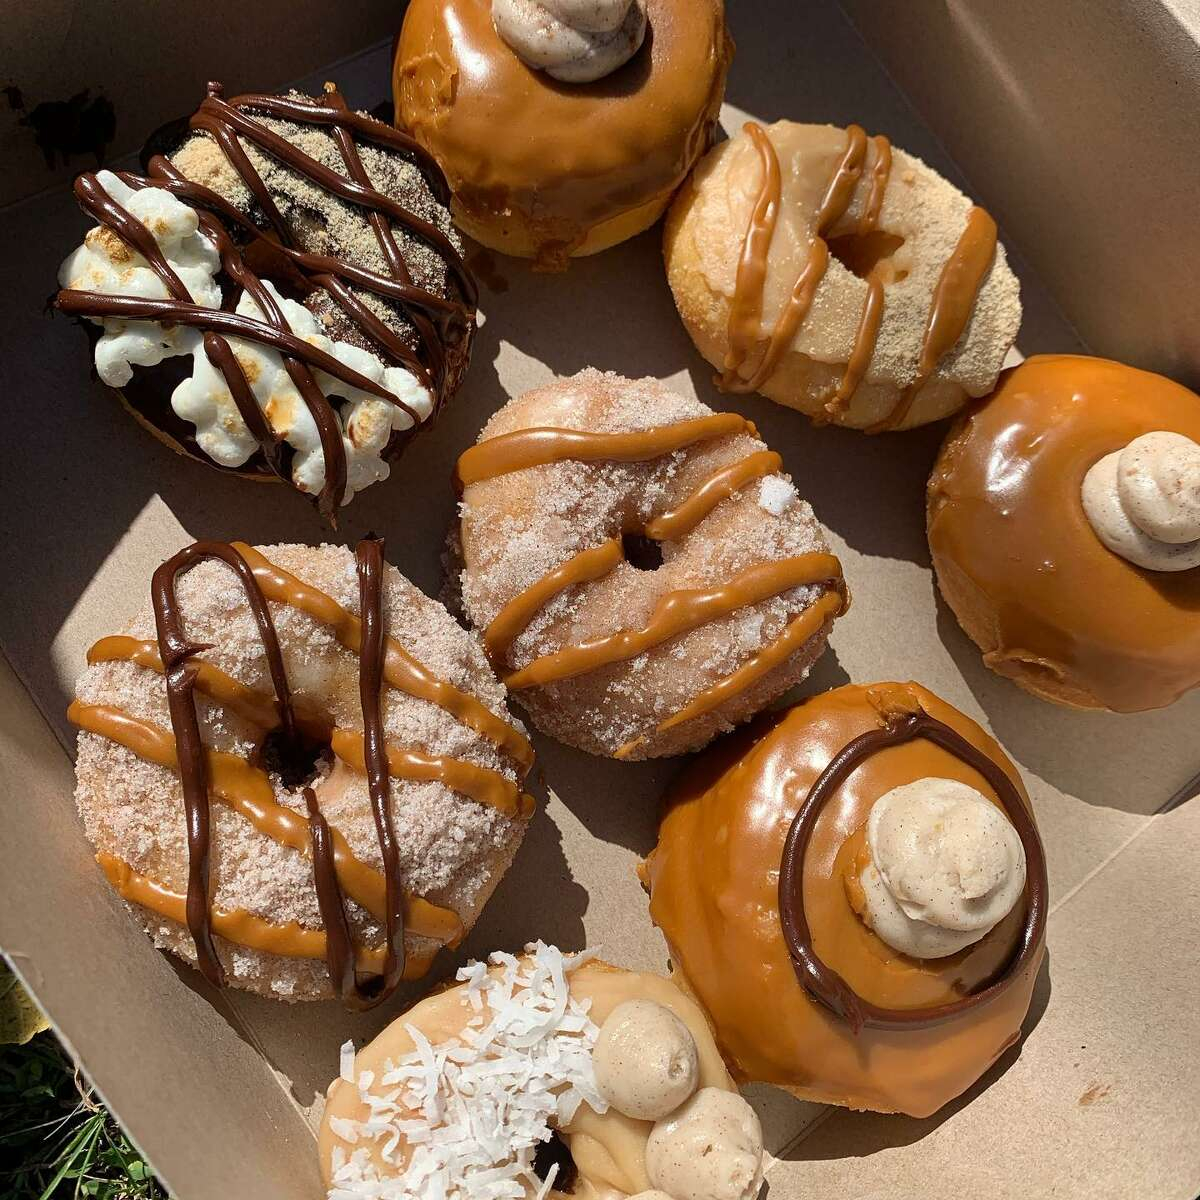 Cosmic Donuts plans to open at 3 Albany Ave. in Kinderhook on Monday, Oct. 19.